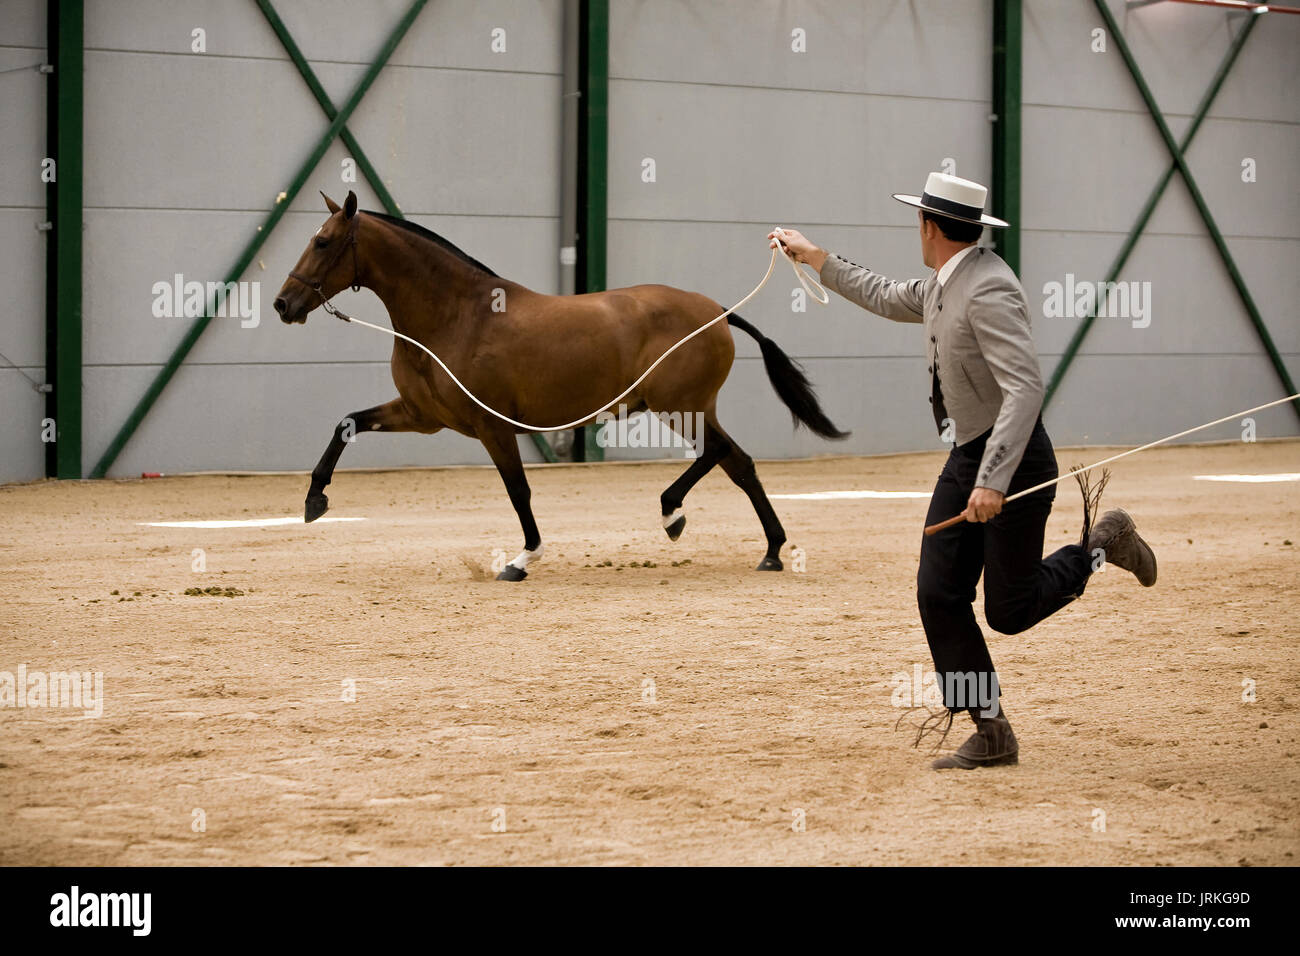 Equestrian test of morphology to pure Spanish horses, Spain - Stock Image